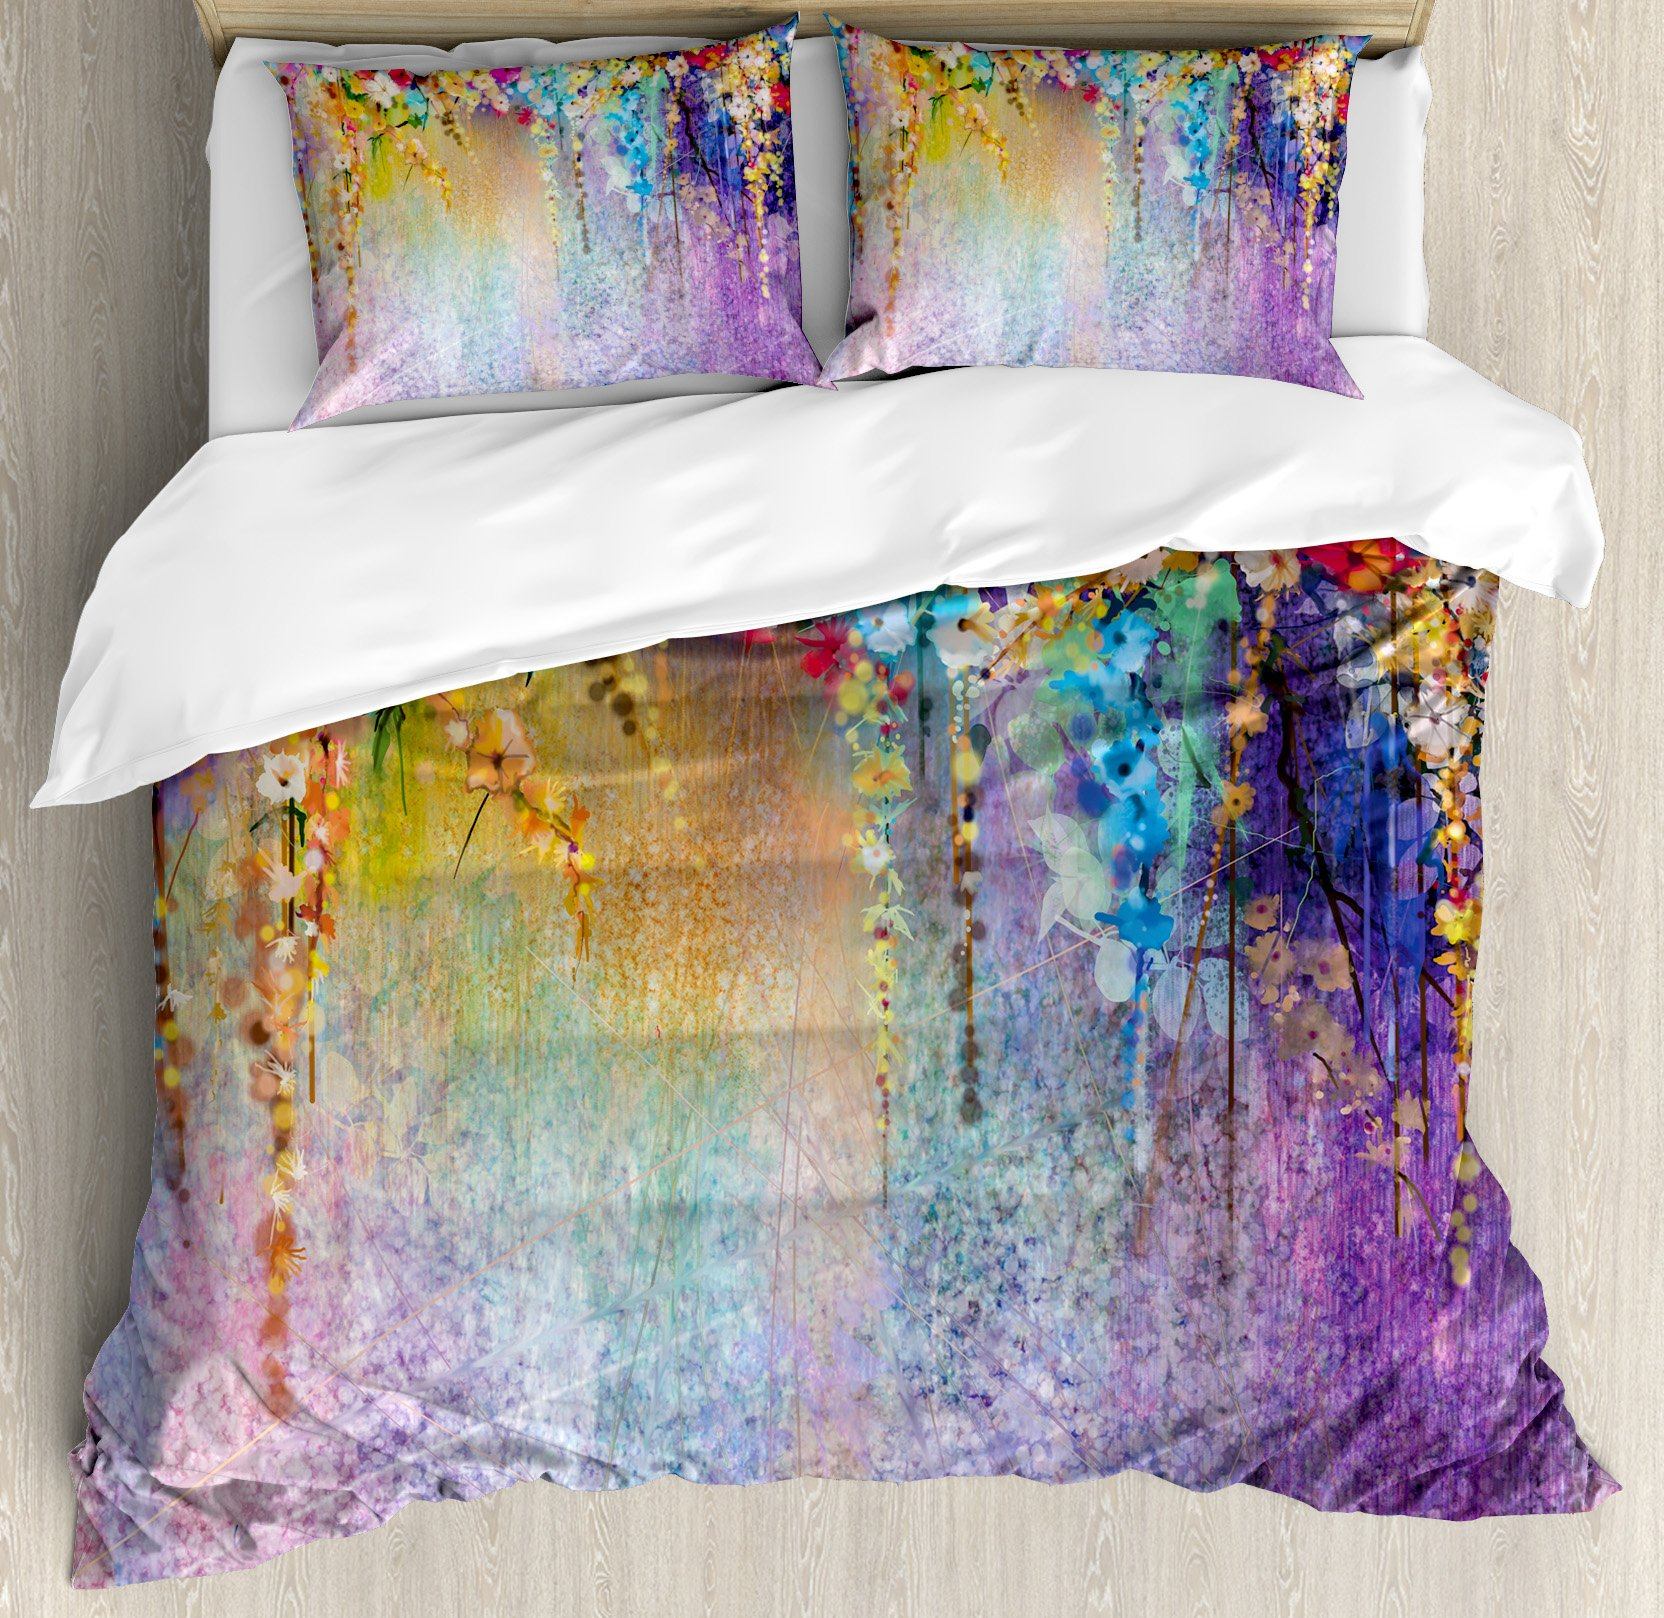 Ambesonne Watercolor Flower Home Decor Duvet Cover Set, Abstract Herbs Weeds Blossoms Ivy Back with Florets Shrubs Design, 3 Piece Bedding Set with Pillow Shams, Queen/Full, Multi